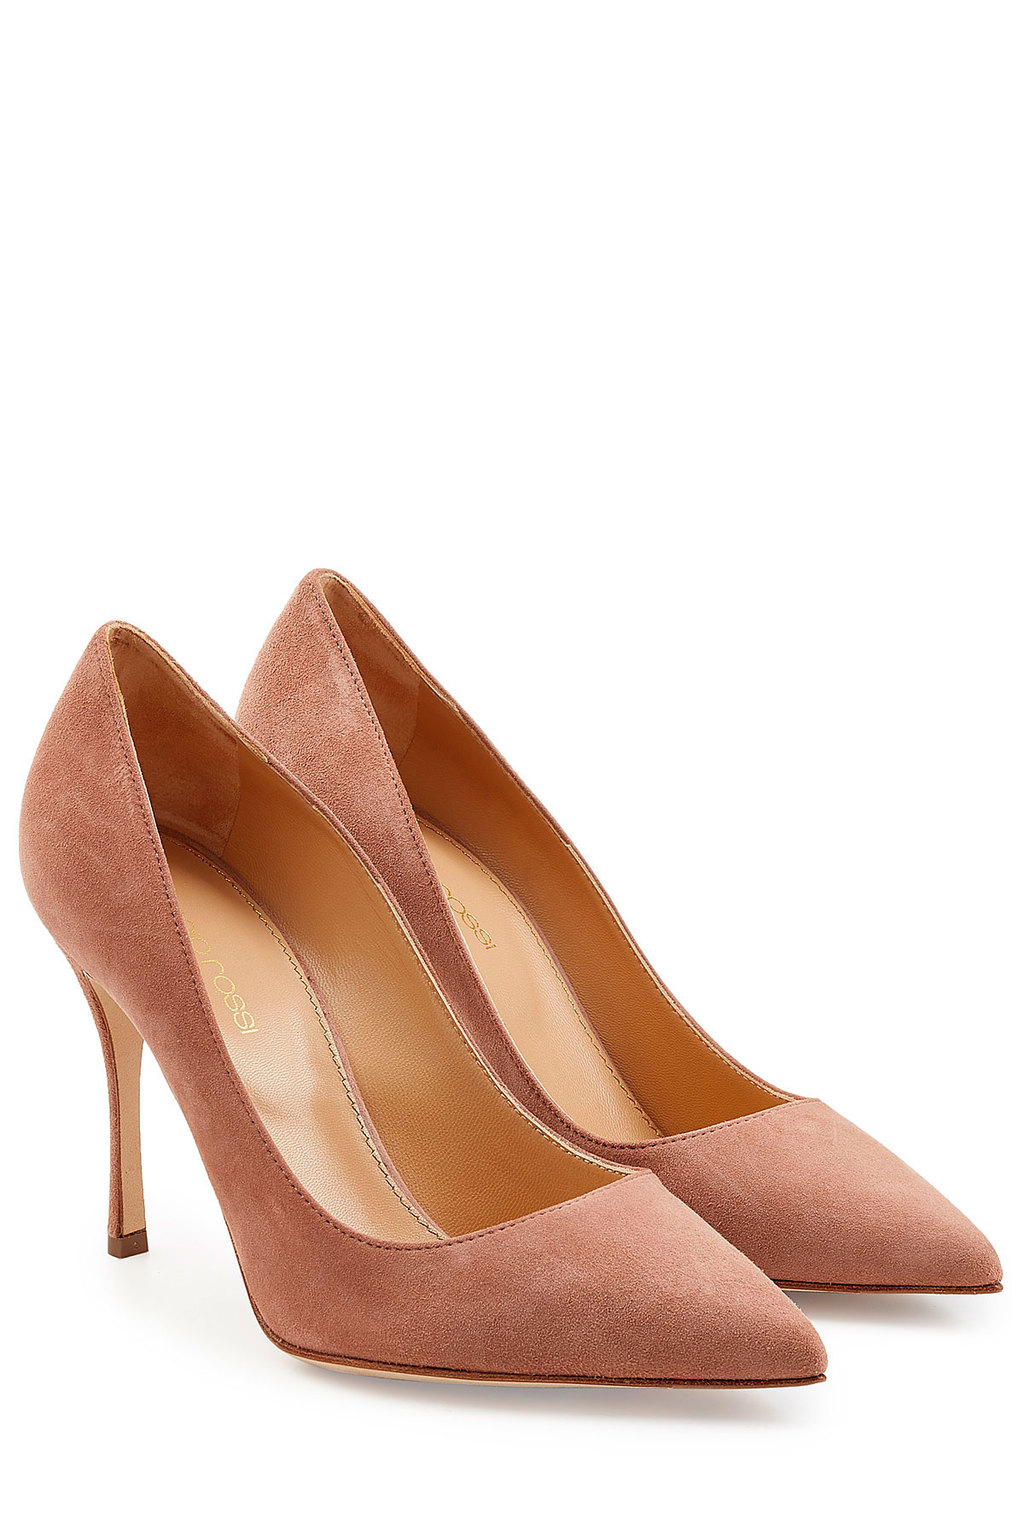 Suede Pumps Rose - predominant colour: camel; occasions: evening, creative work; material: suede; heel height: high; heel: stiletto; toe: pointed toe; style: courts; finish: plain; pattern: plain; season: a/w 2015